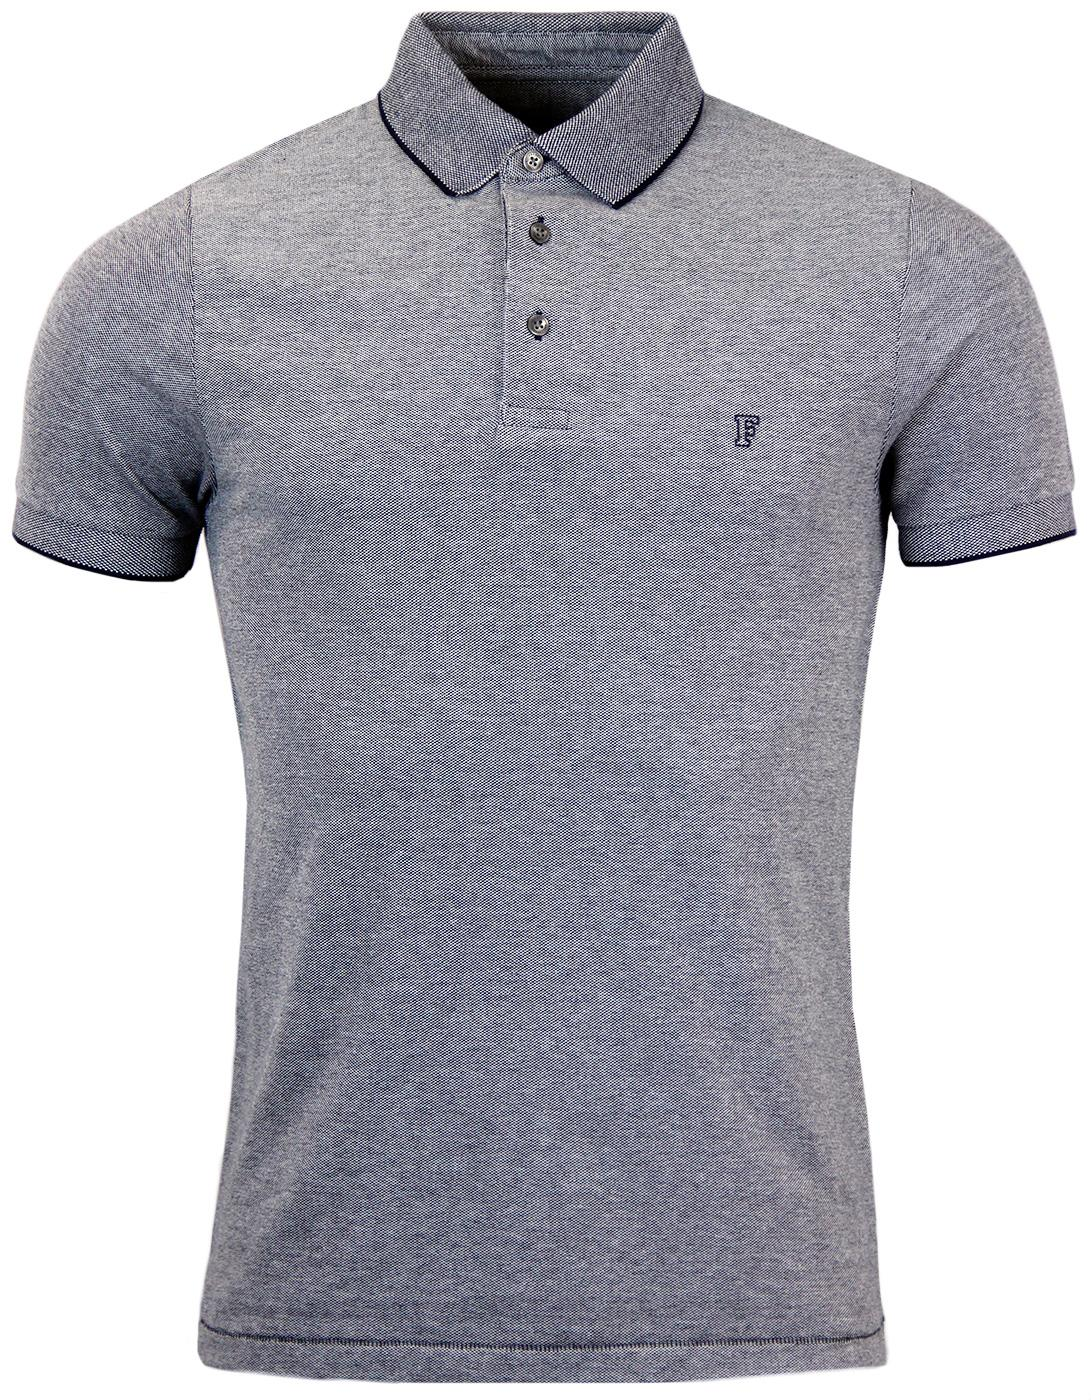 FRENCH CONNECTION Retro Mod 60s Pique Polo